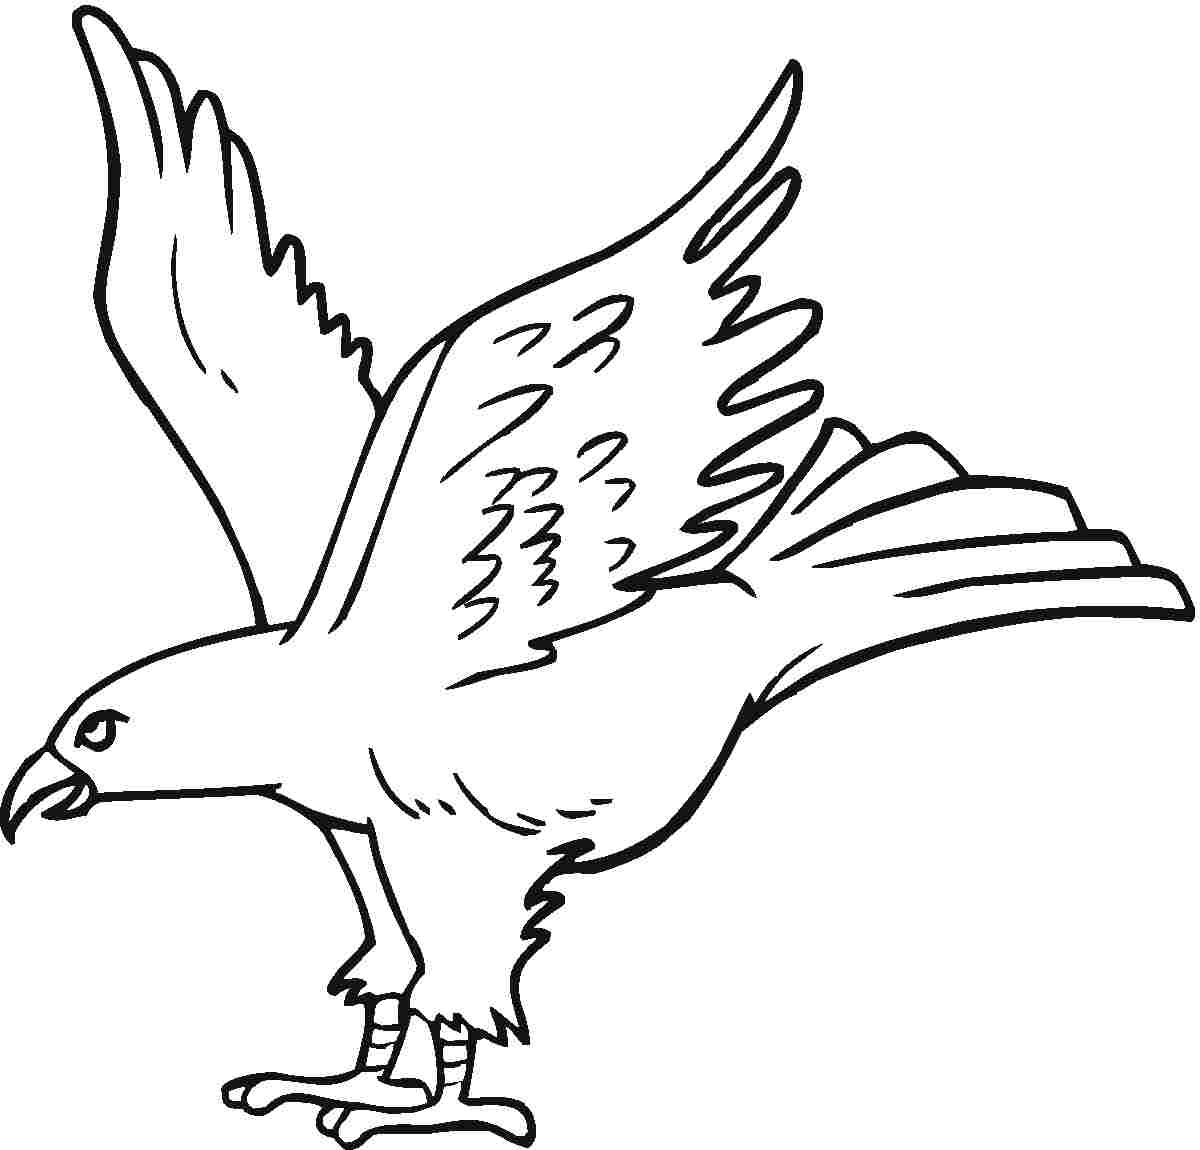 eagle colouring free printable bald eagle coloring pages for kids colouring eagle 1 1